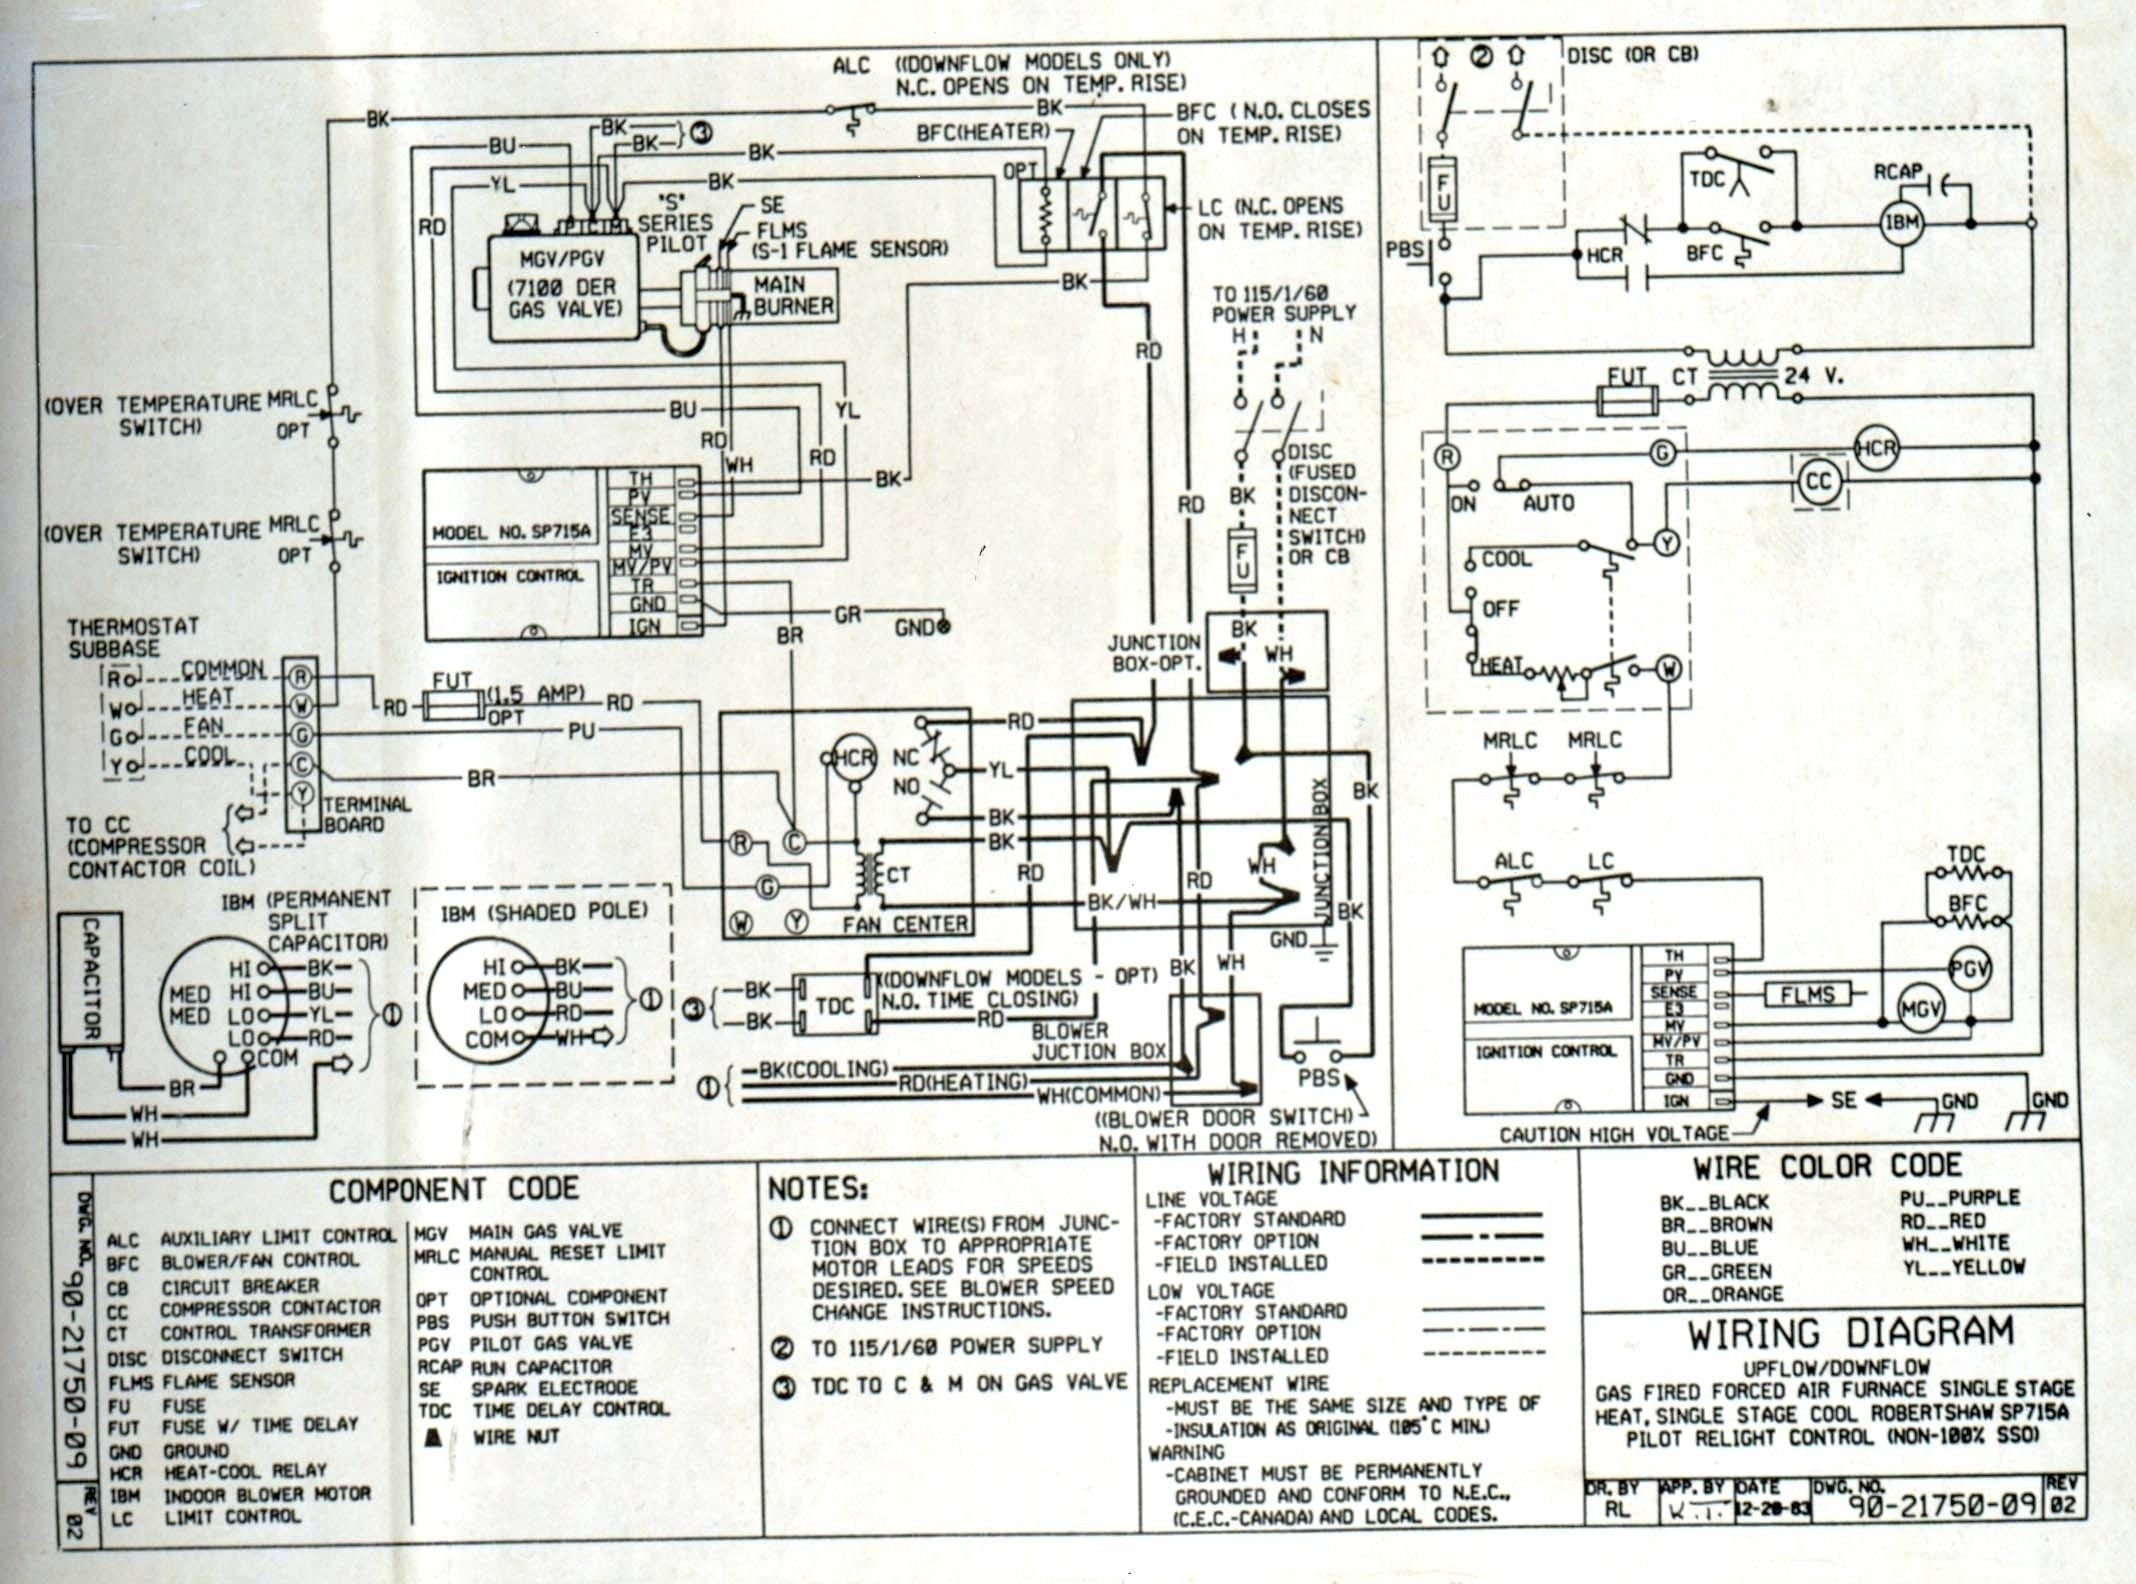 Automatic Transfer Switch Wiring Diagram Free In 2021 Thermostat Wiring Trane Electrical Wiring Diagram